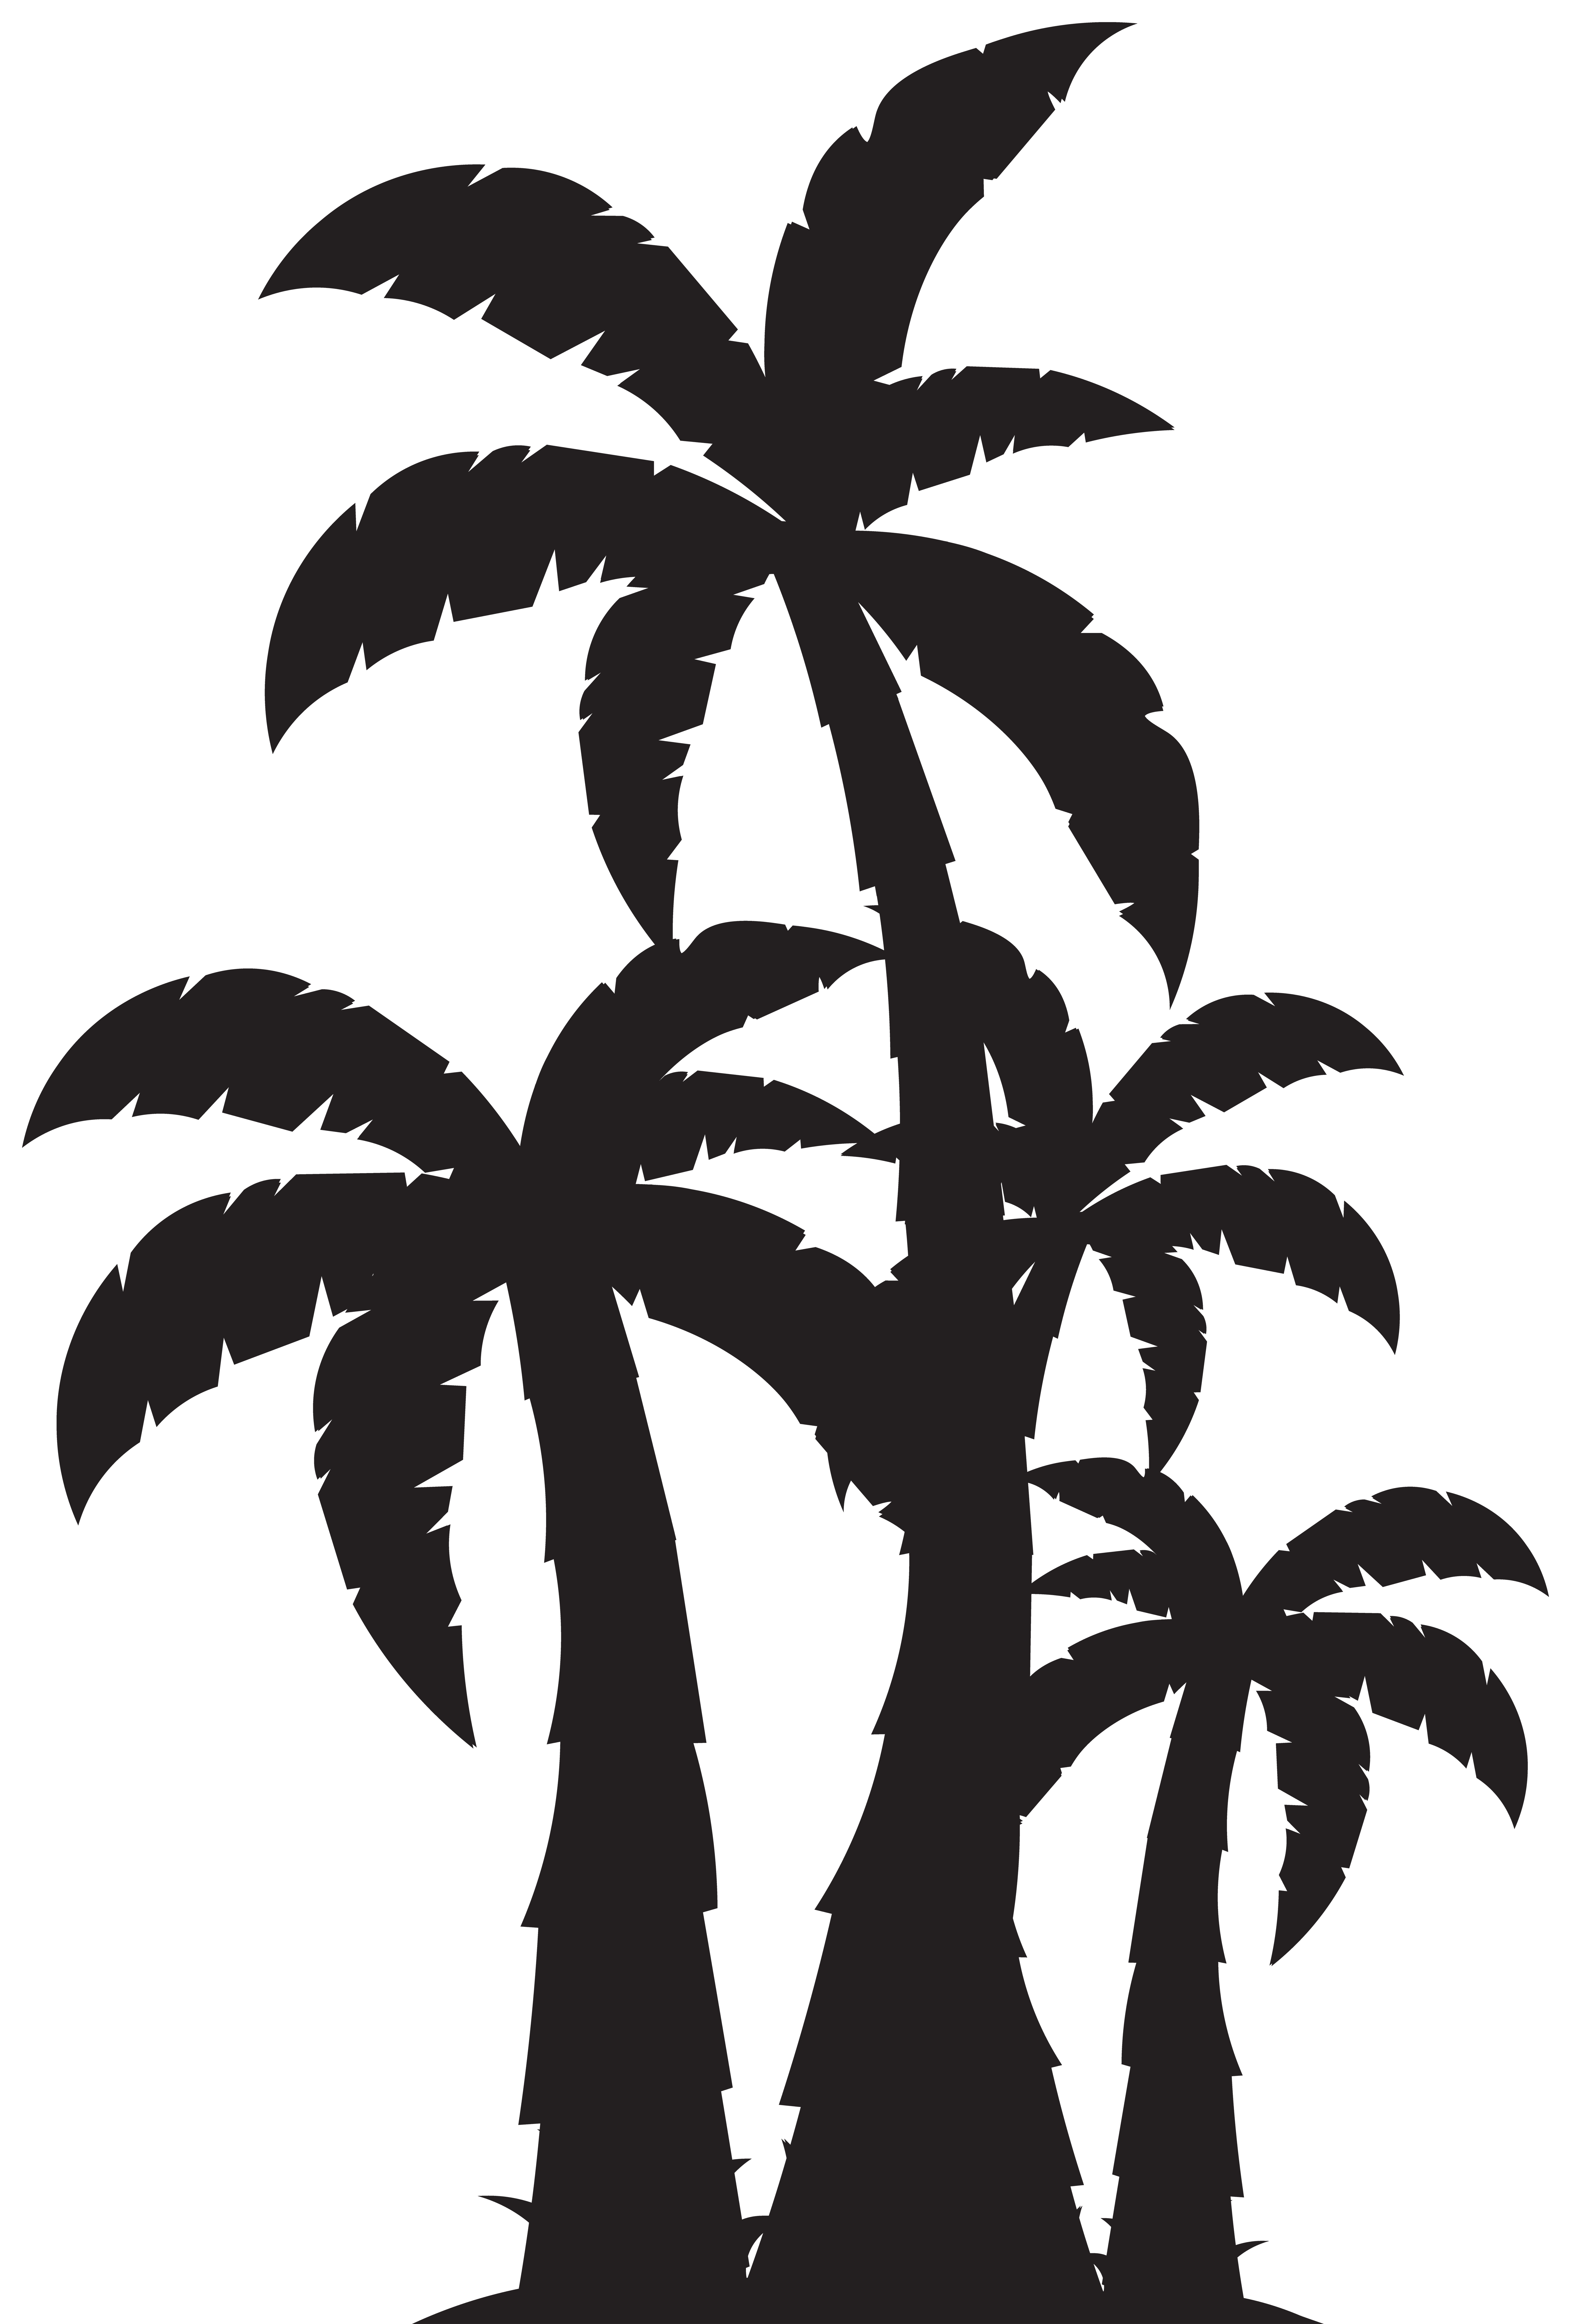 Palm trees and sun black and white png. Tree silhouette clip art